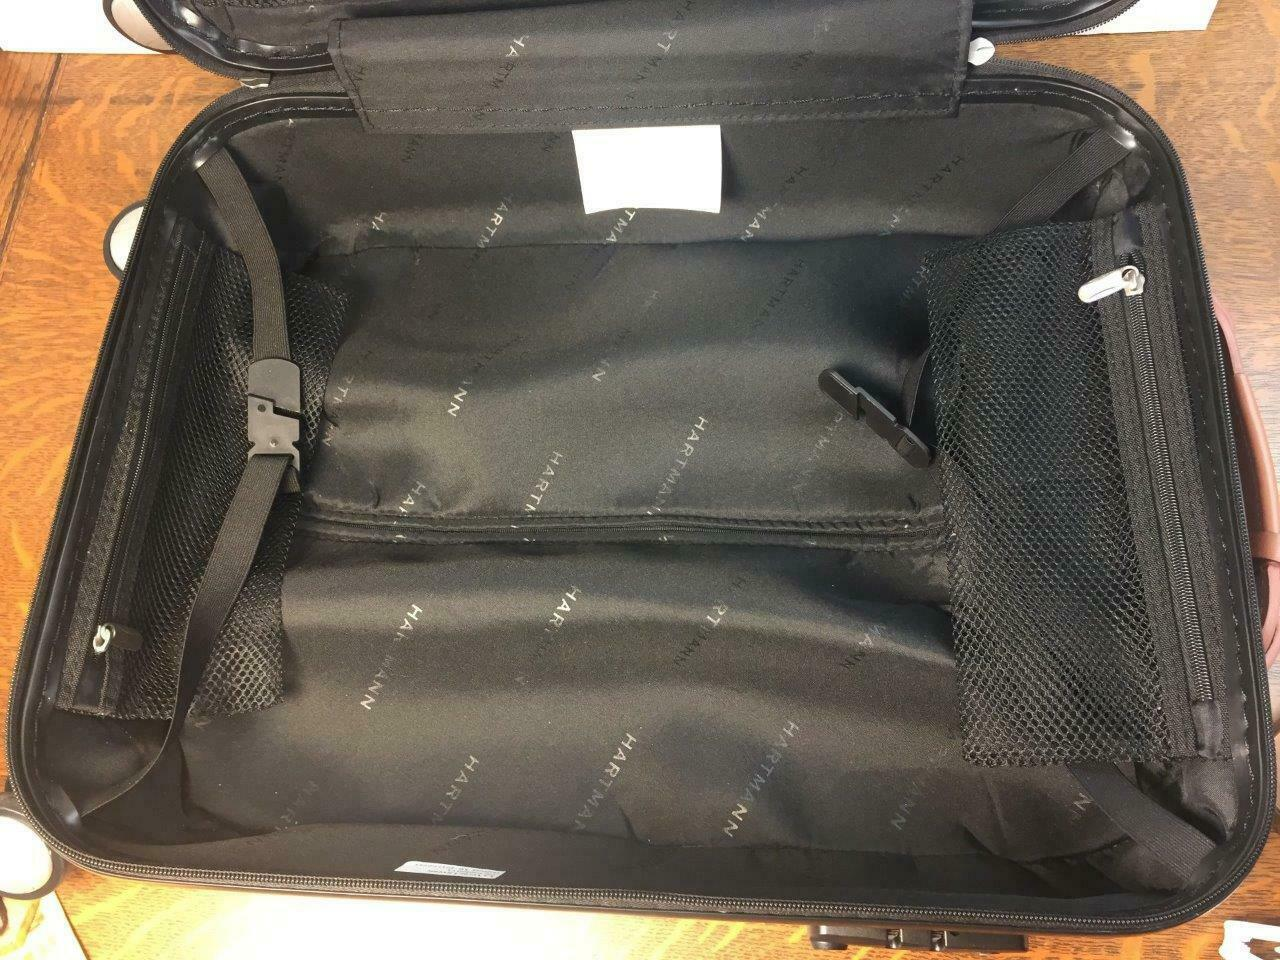 HARTMANN PC4 Carry-on Black Spinner Bag Rolling Suitcase Hardside Luggage Used